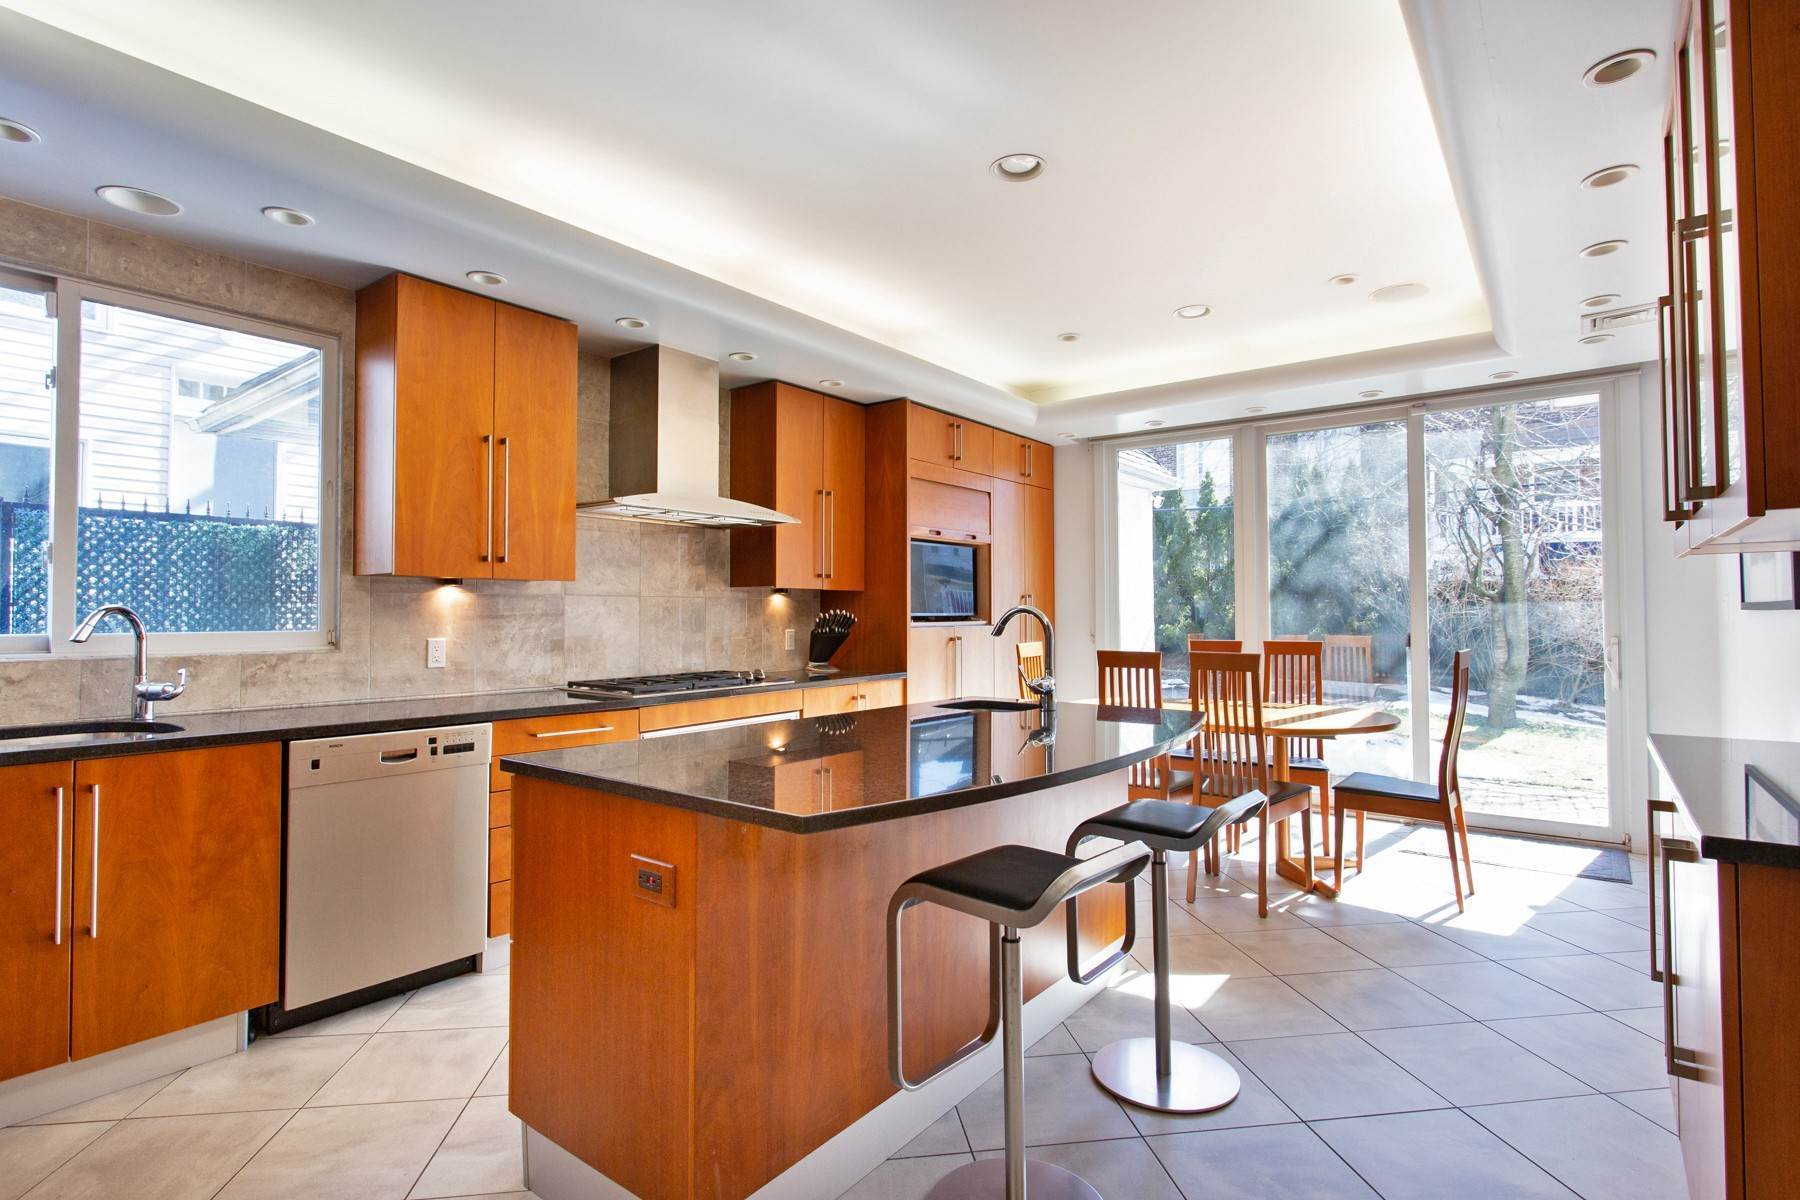 5. Single Family Homes for Sale at 'GRACIOUS LIVING IN KEW GARDENS' 103 Mowbray Drive, Kew Gardens, New York 11415 United States